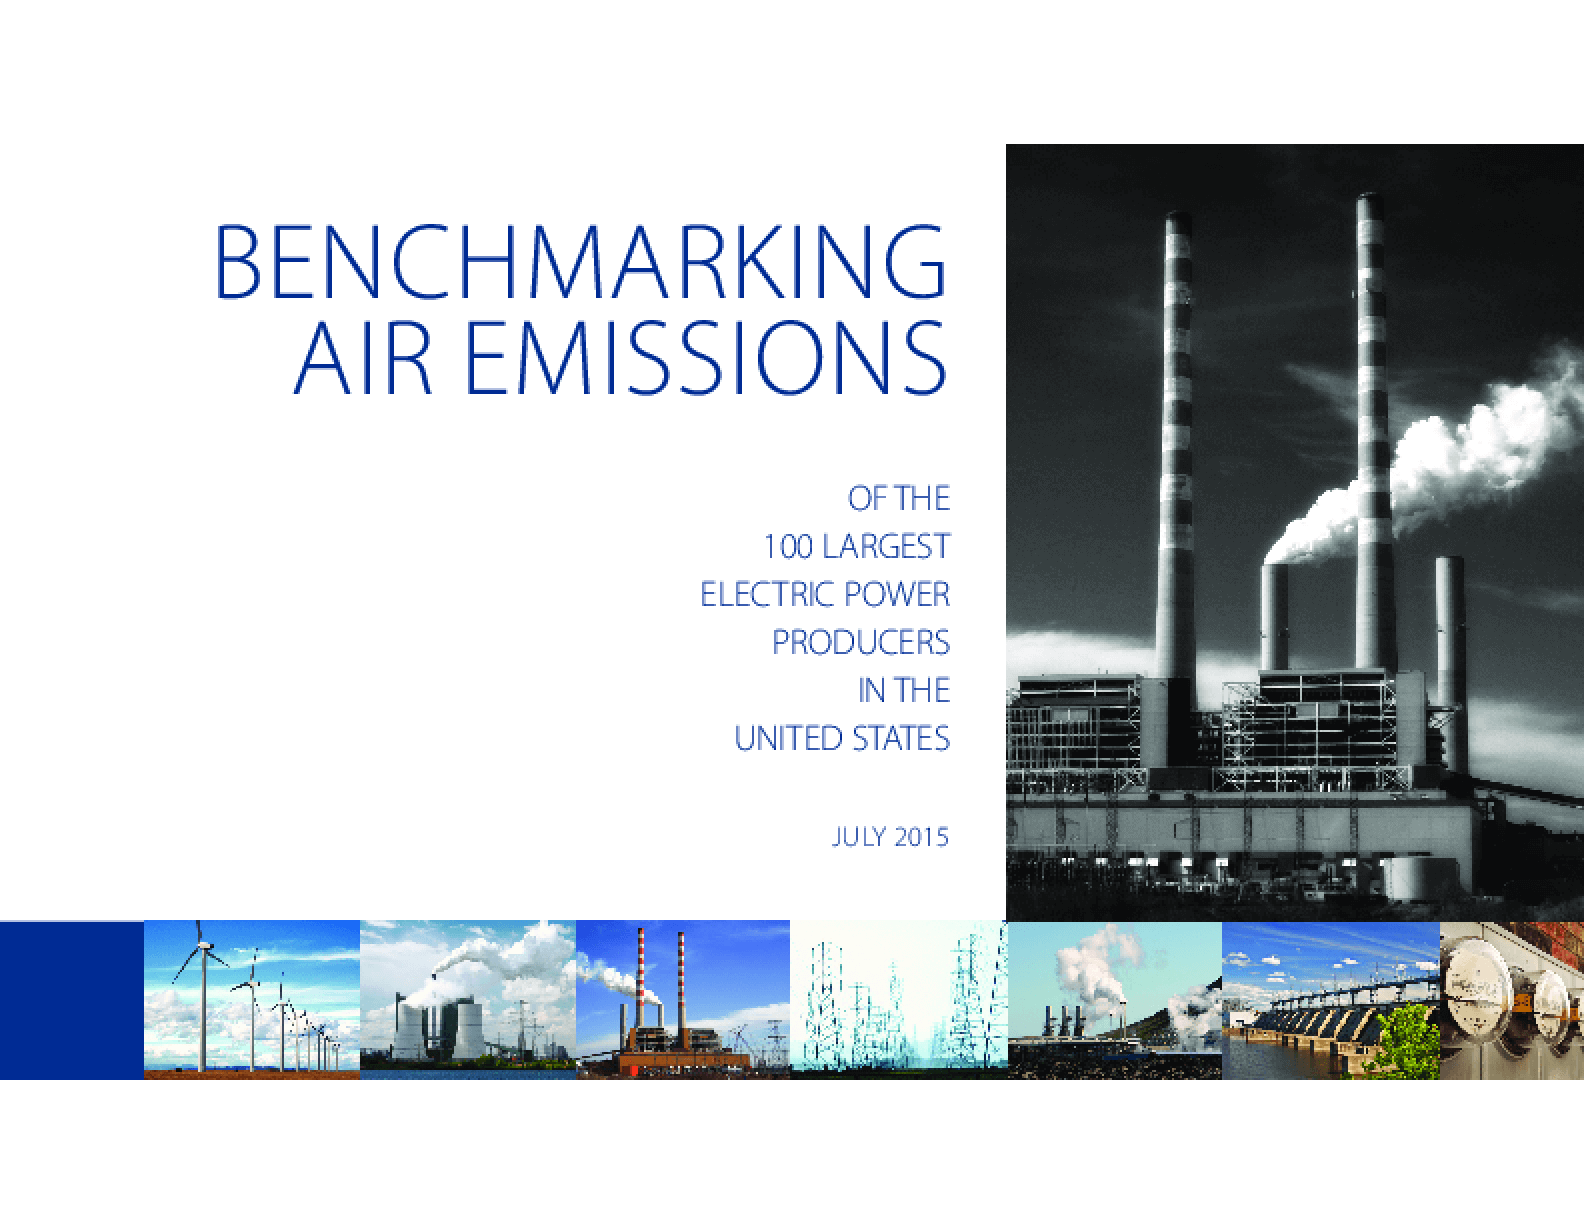 Benchmarking Air Emissions of the 100 Largest Electric Power Producers in the United States